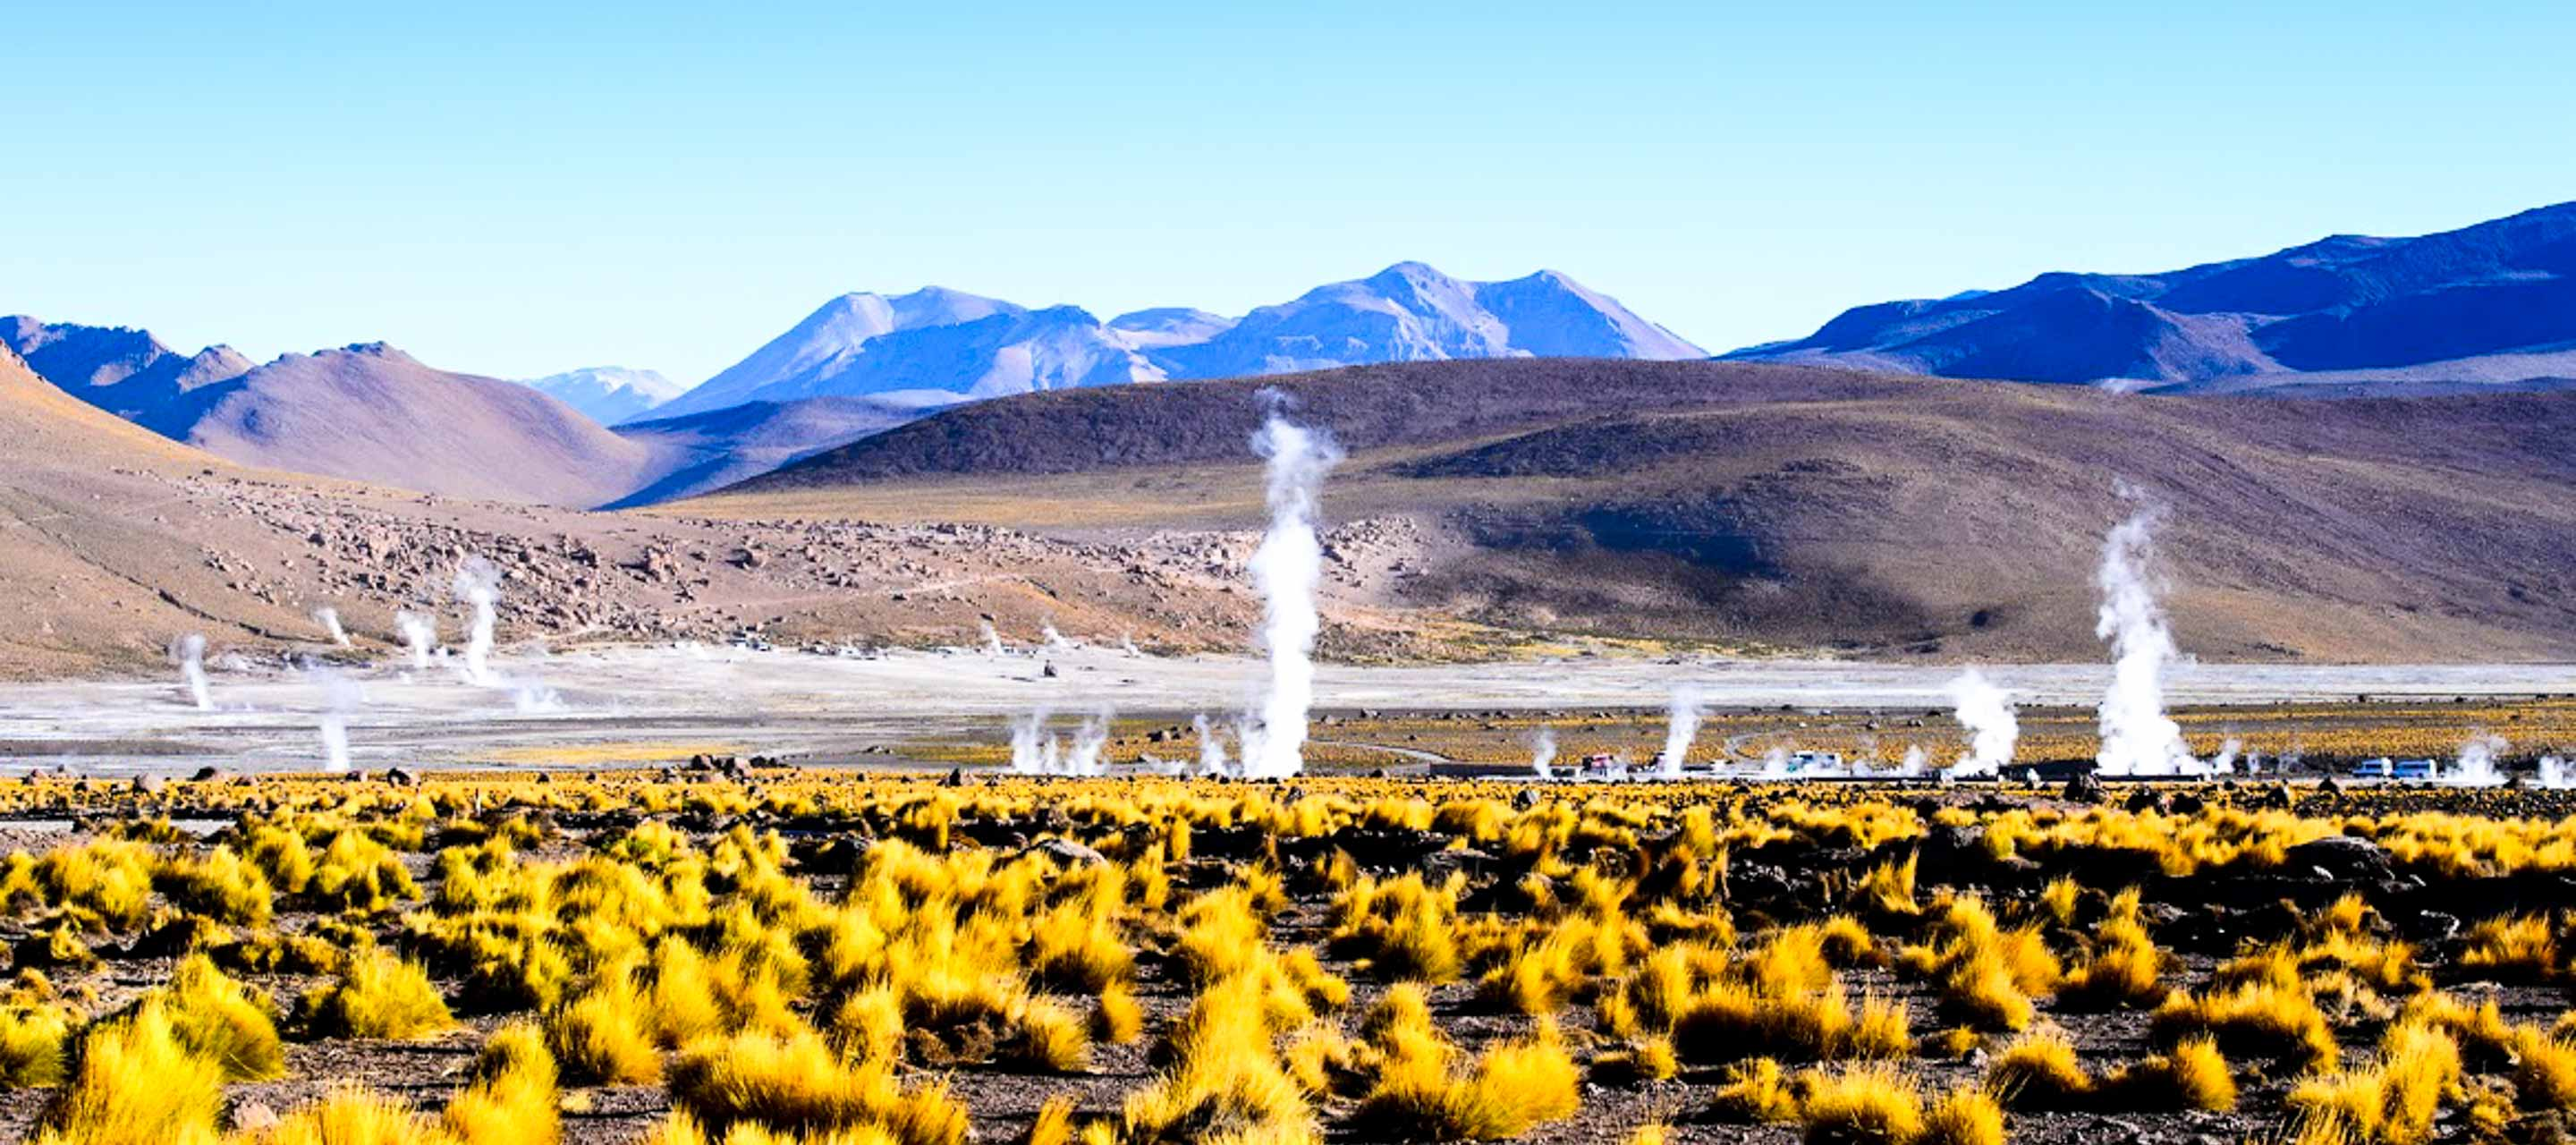 Natural Steam vents in South America